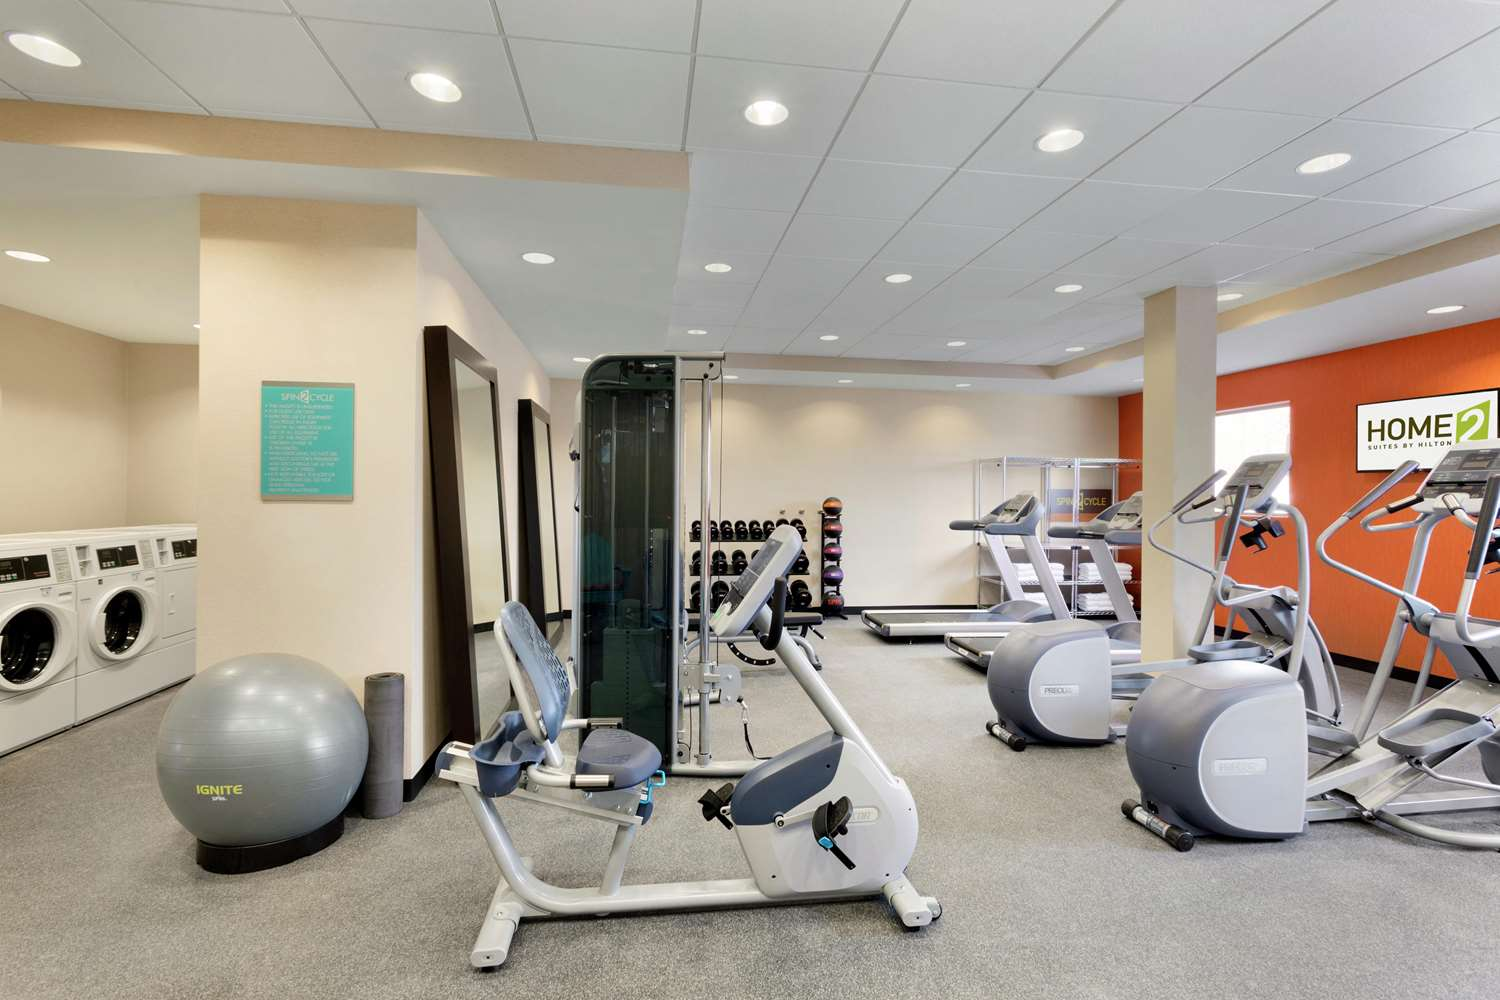 Fitness/ Exercise Room - Home2 Suites by Hilton Middletown